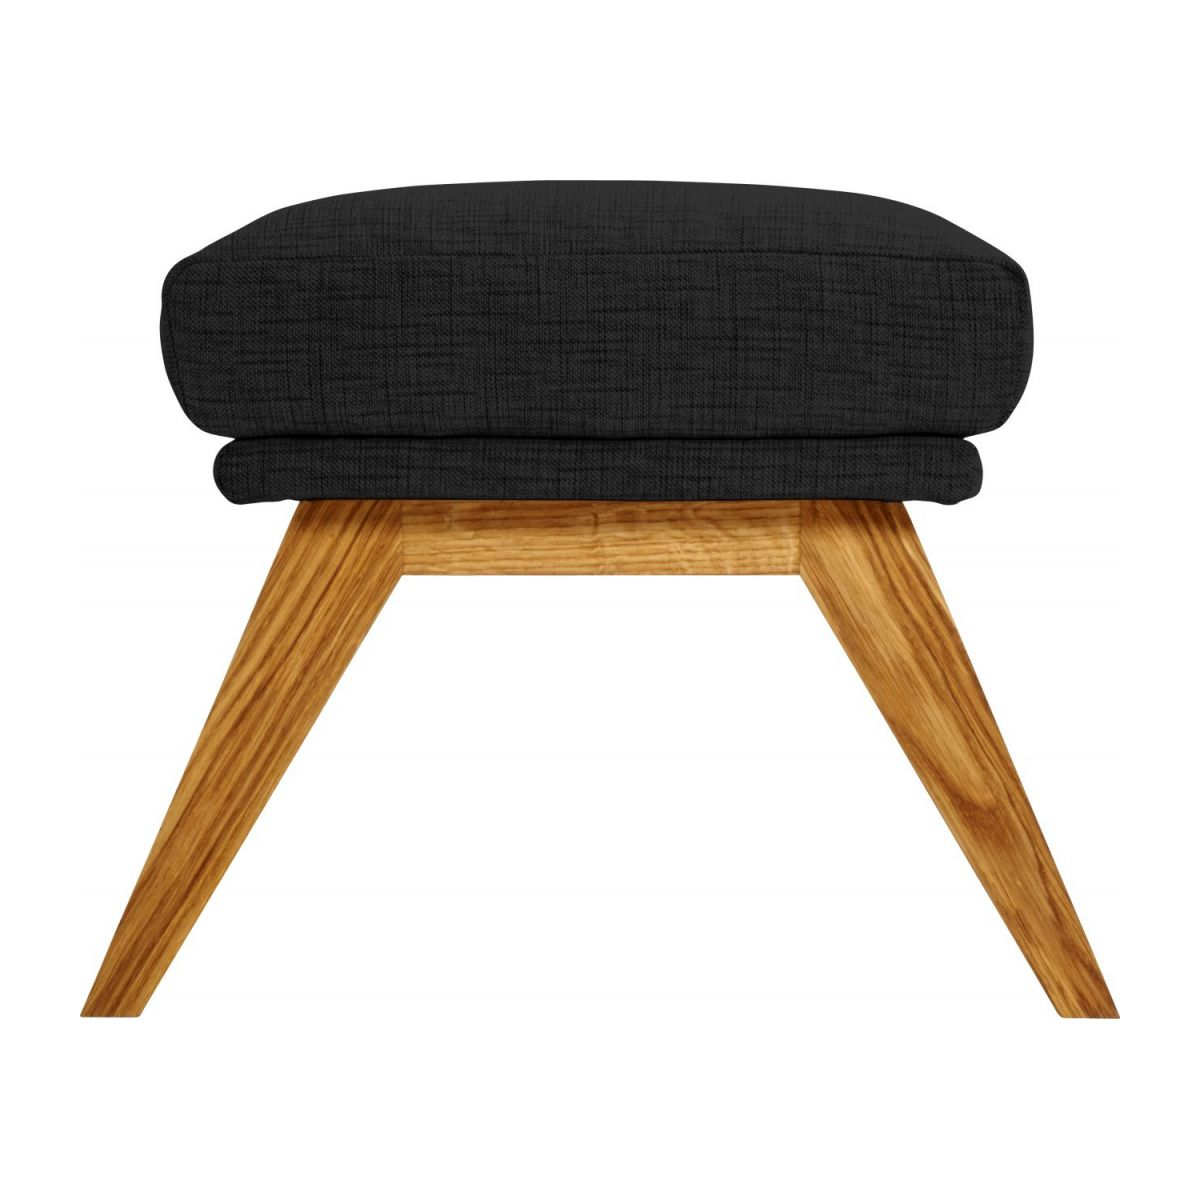 Footstool in Ancio fabric, nero with oak legs n°4